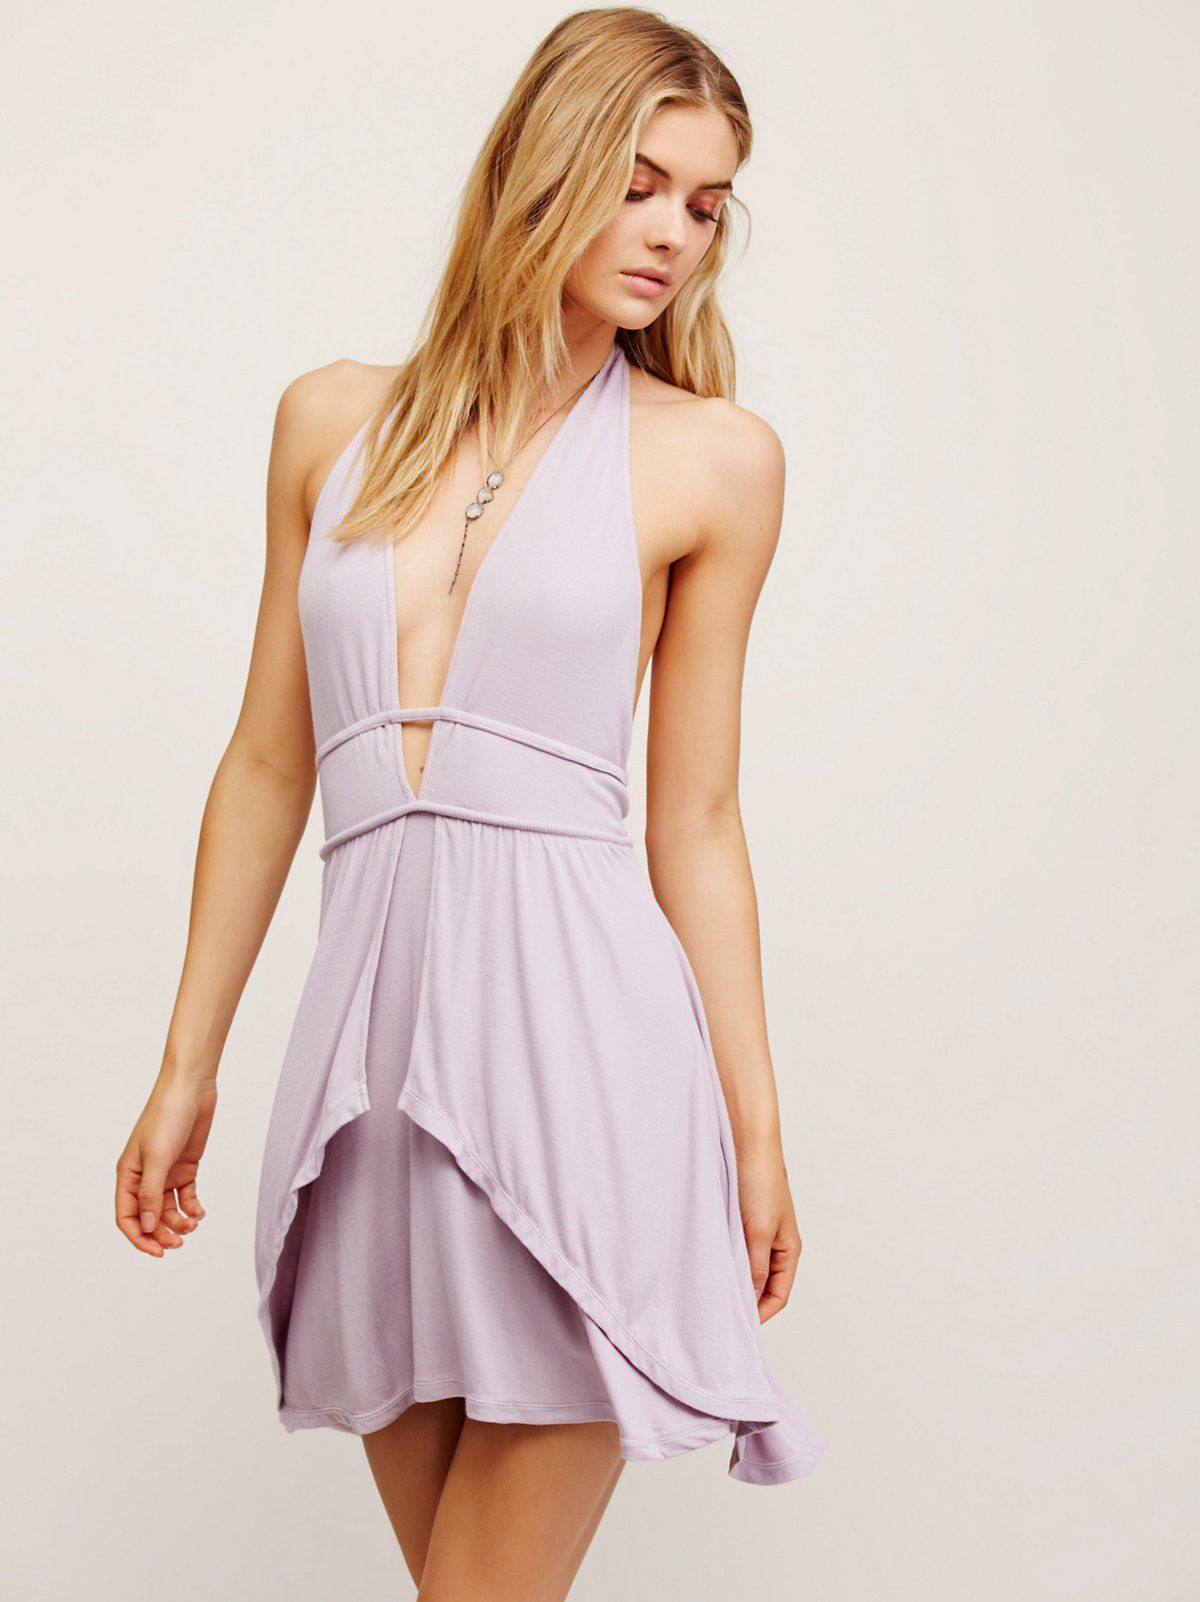 Neptune flare mini dress in our easy beach jersey ribbed fabric